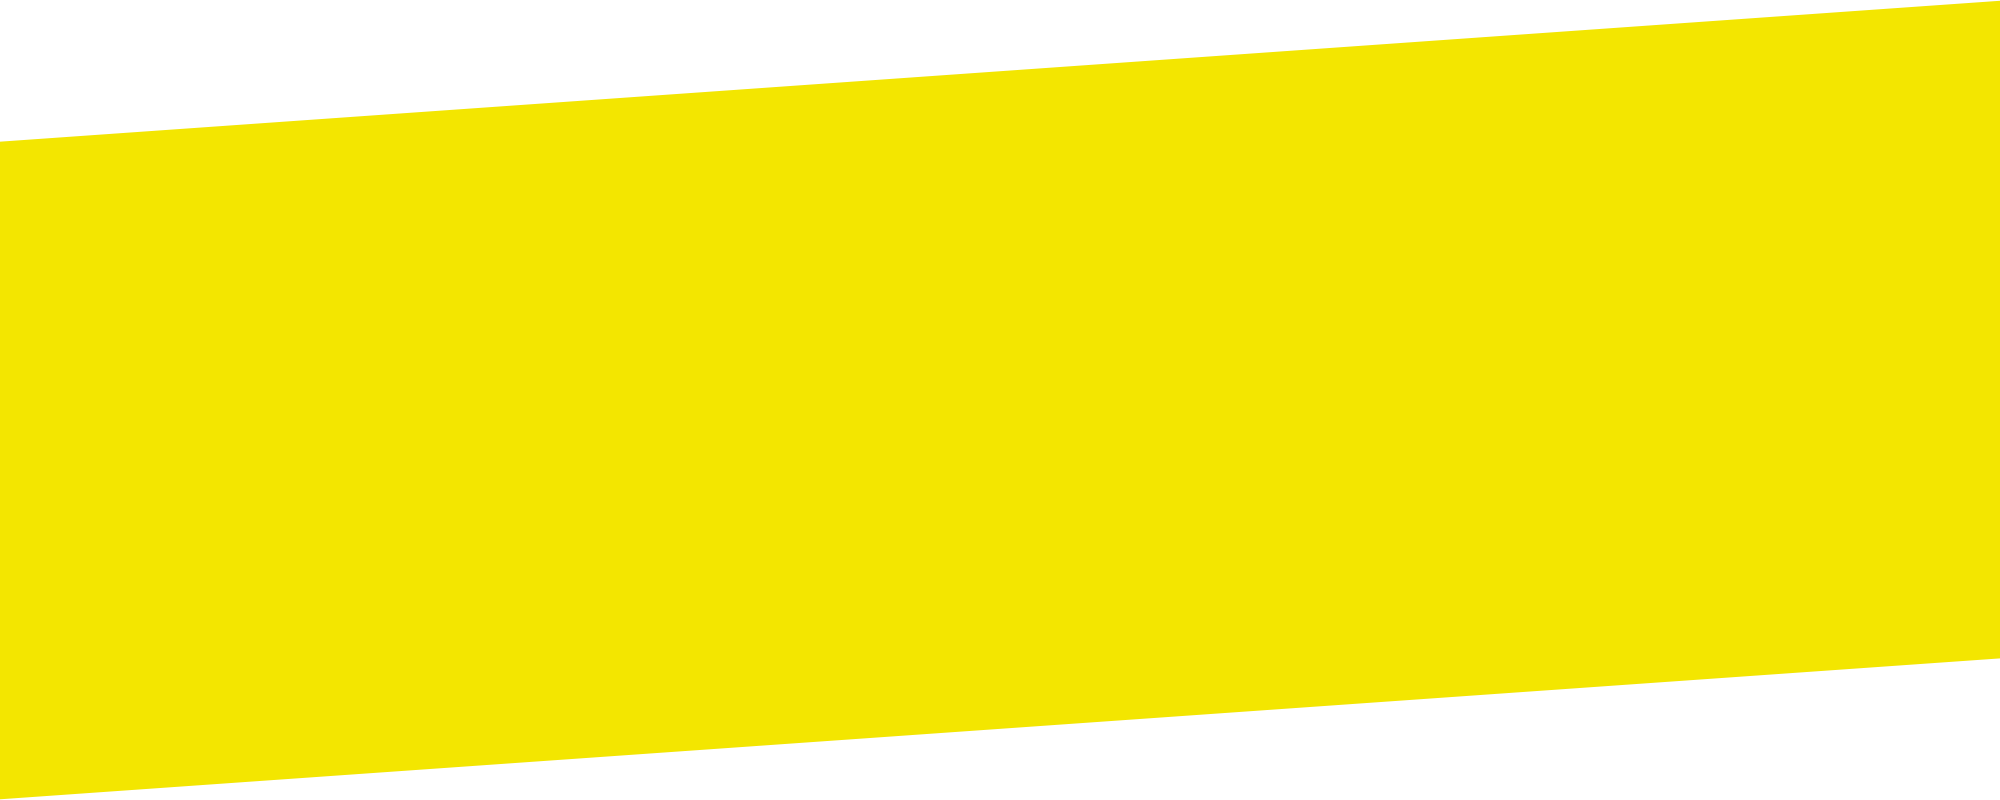 SAU - background gold x790.png